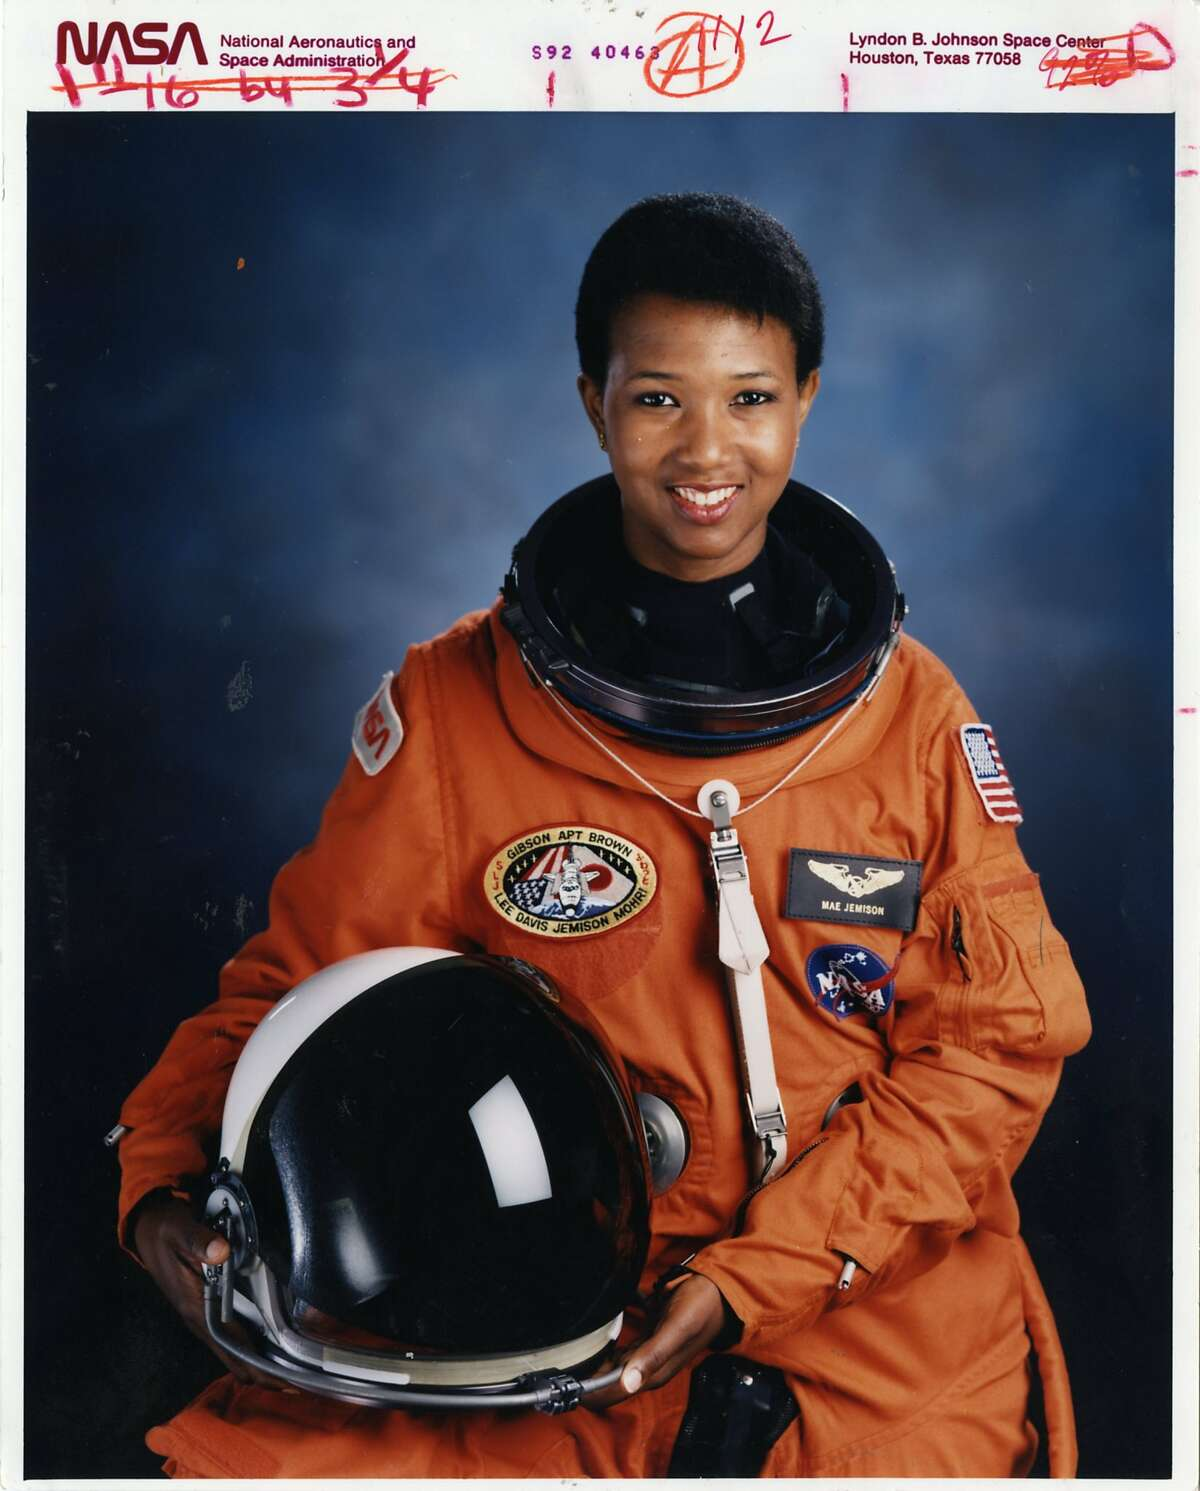 MAE C. JEMISON, M.D. -- Astronaut 1992 - Mission Specialist Mae Jemison, first black female in space. The first African-American woman in space She was named an astronaut candidate in 1987. She flew her first flight as a science mission specialist on STS-47, Spacelab-J, in September 1992 on board Space Shuttle Endeavour. NASA July 1992 S92-40463 Johnson Space Center, Houston, Texas 77058